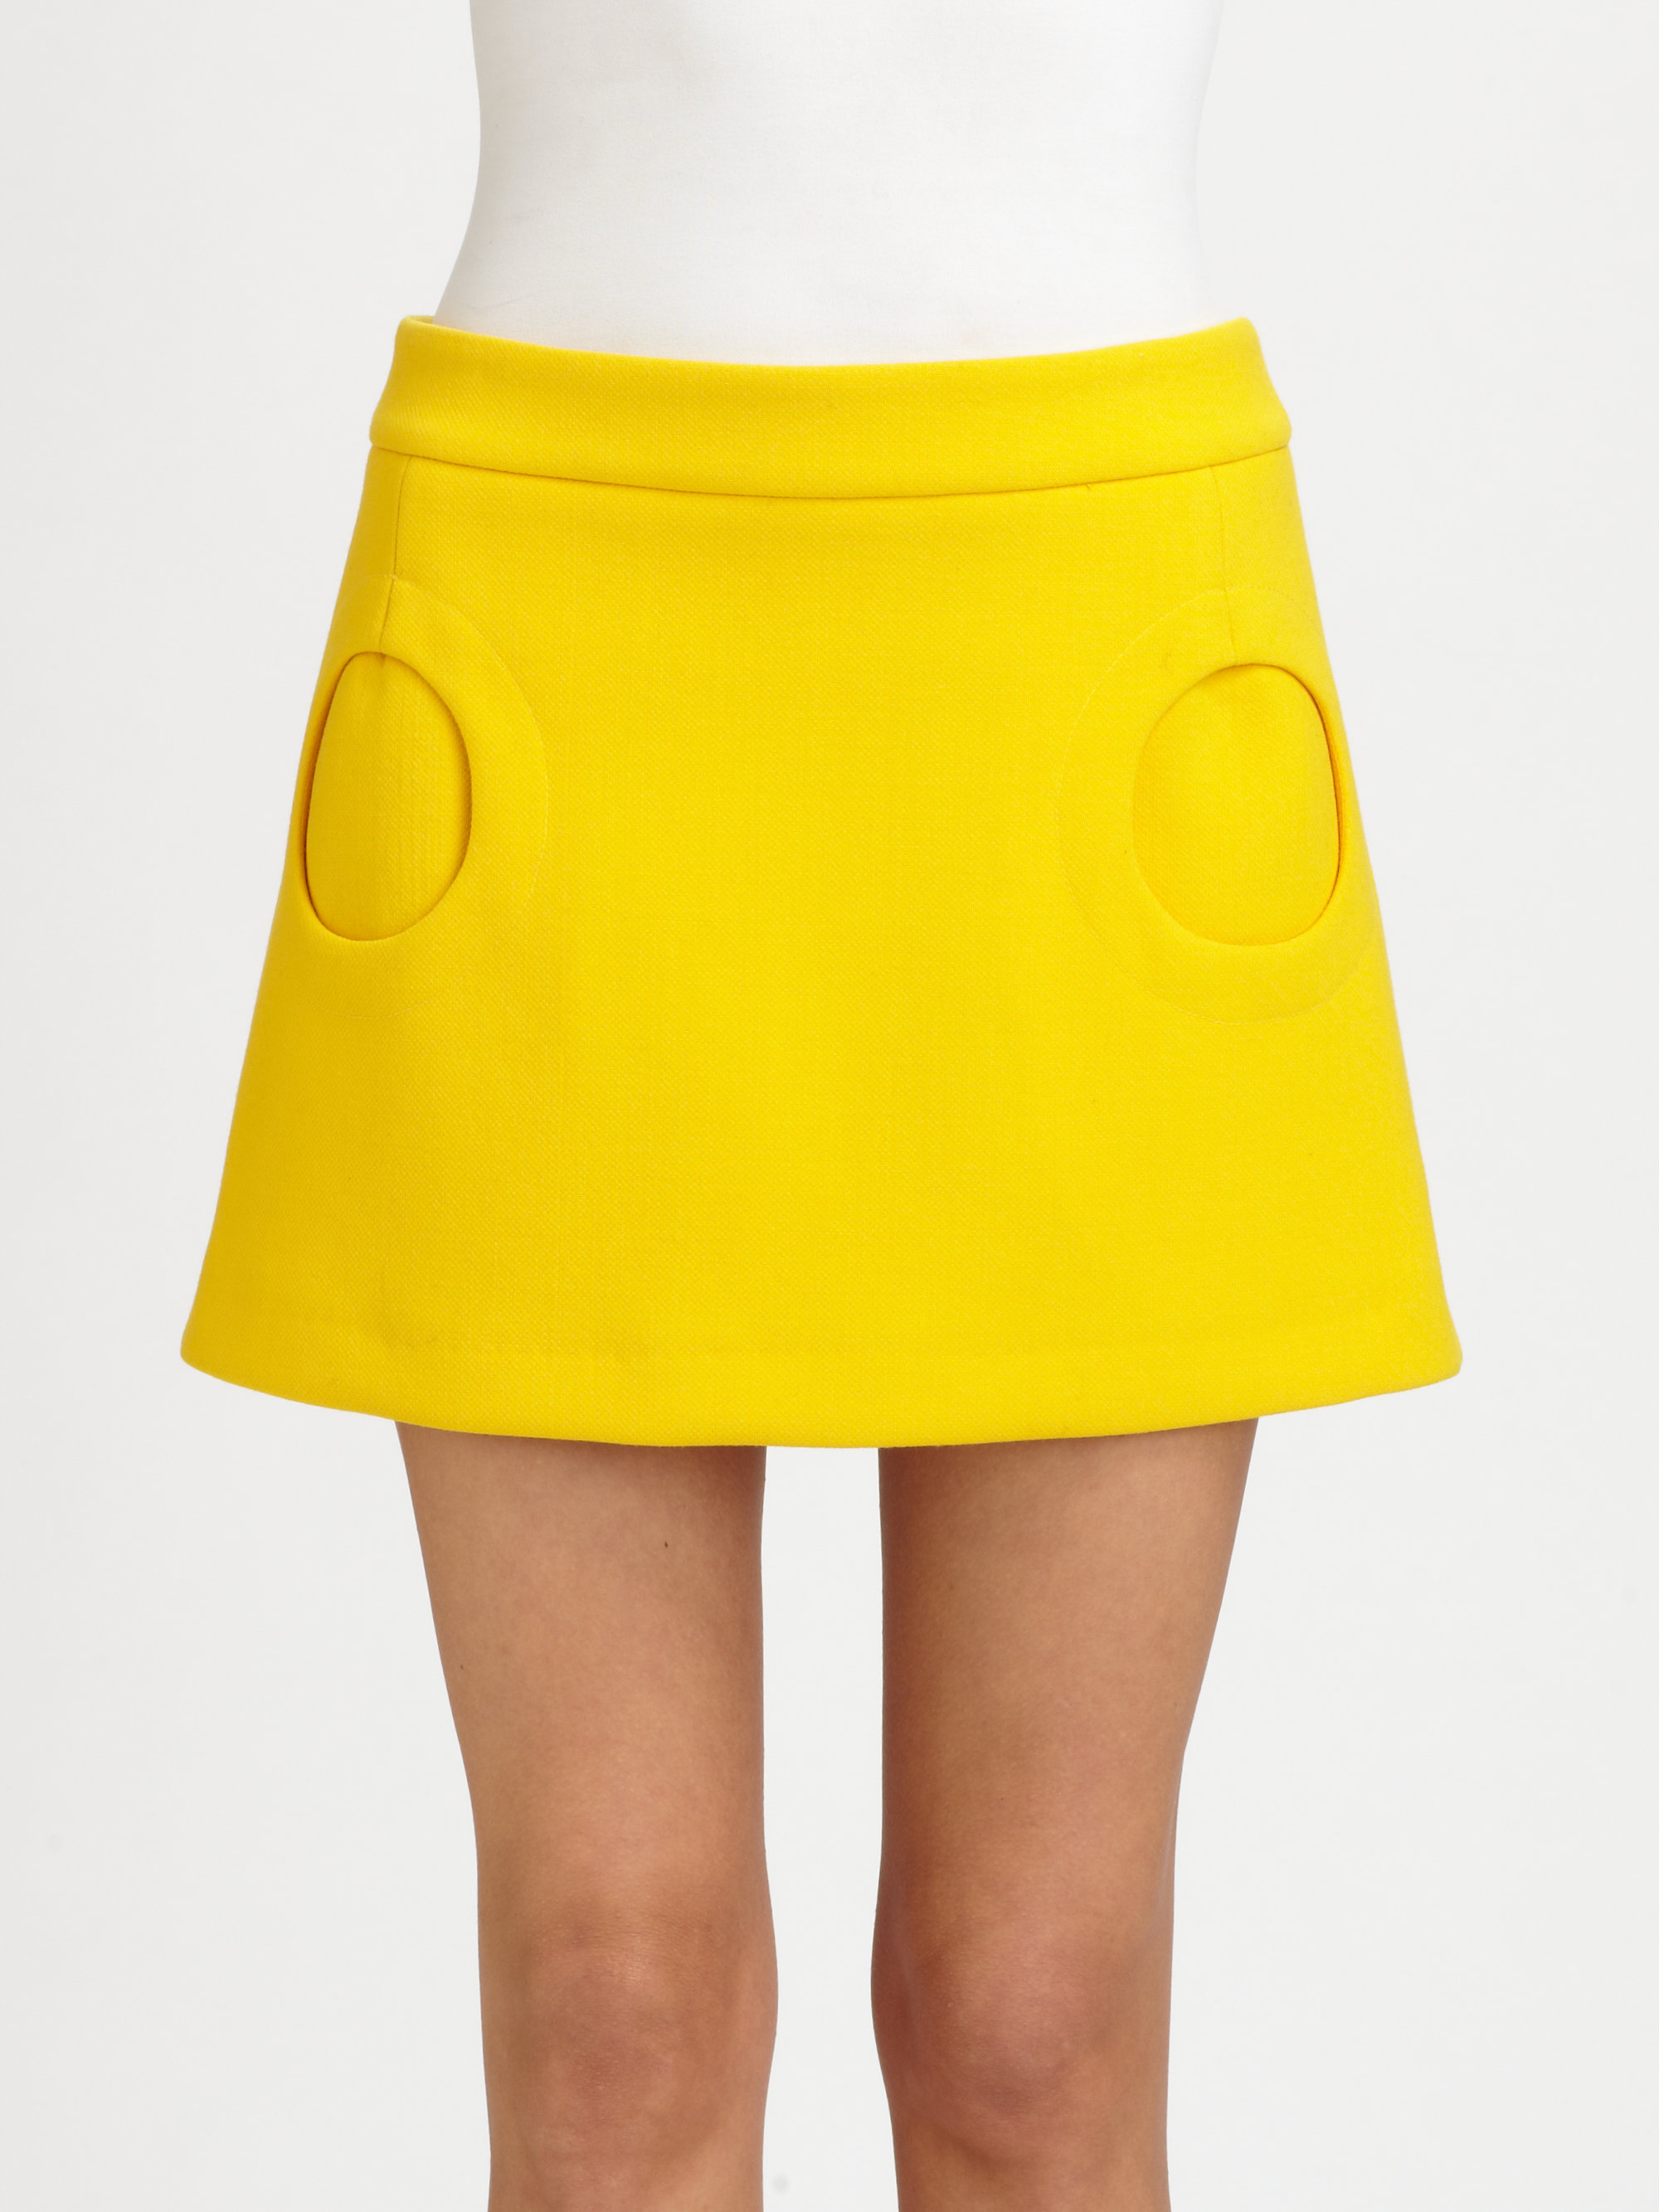 Mi Ni Clips: Michael Kors Circle Pocket Mini Skirt In Yellow